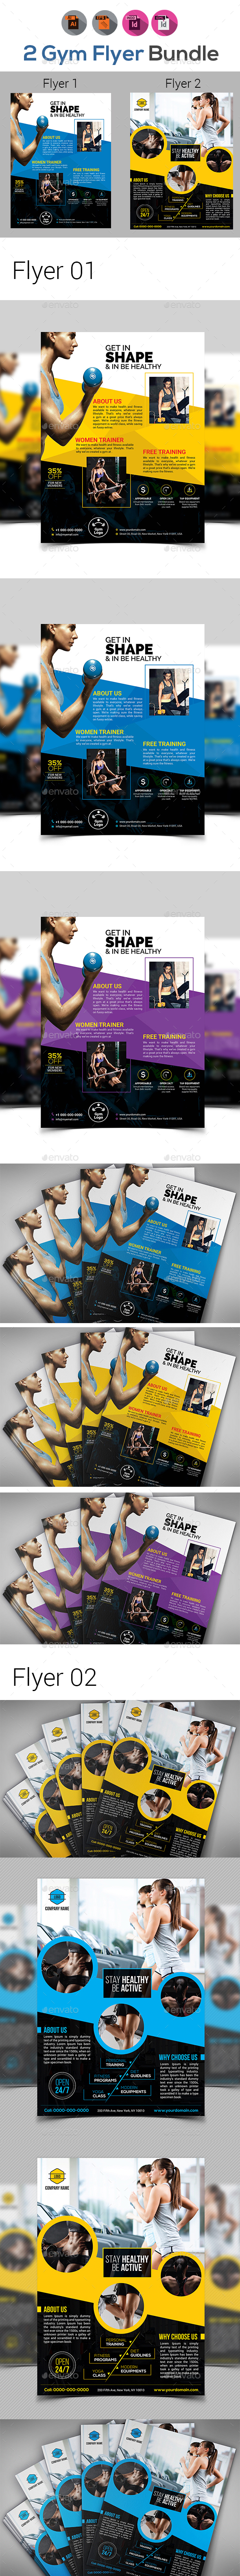 Fitness / Gym Flyer Bundle V7